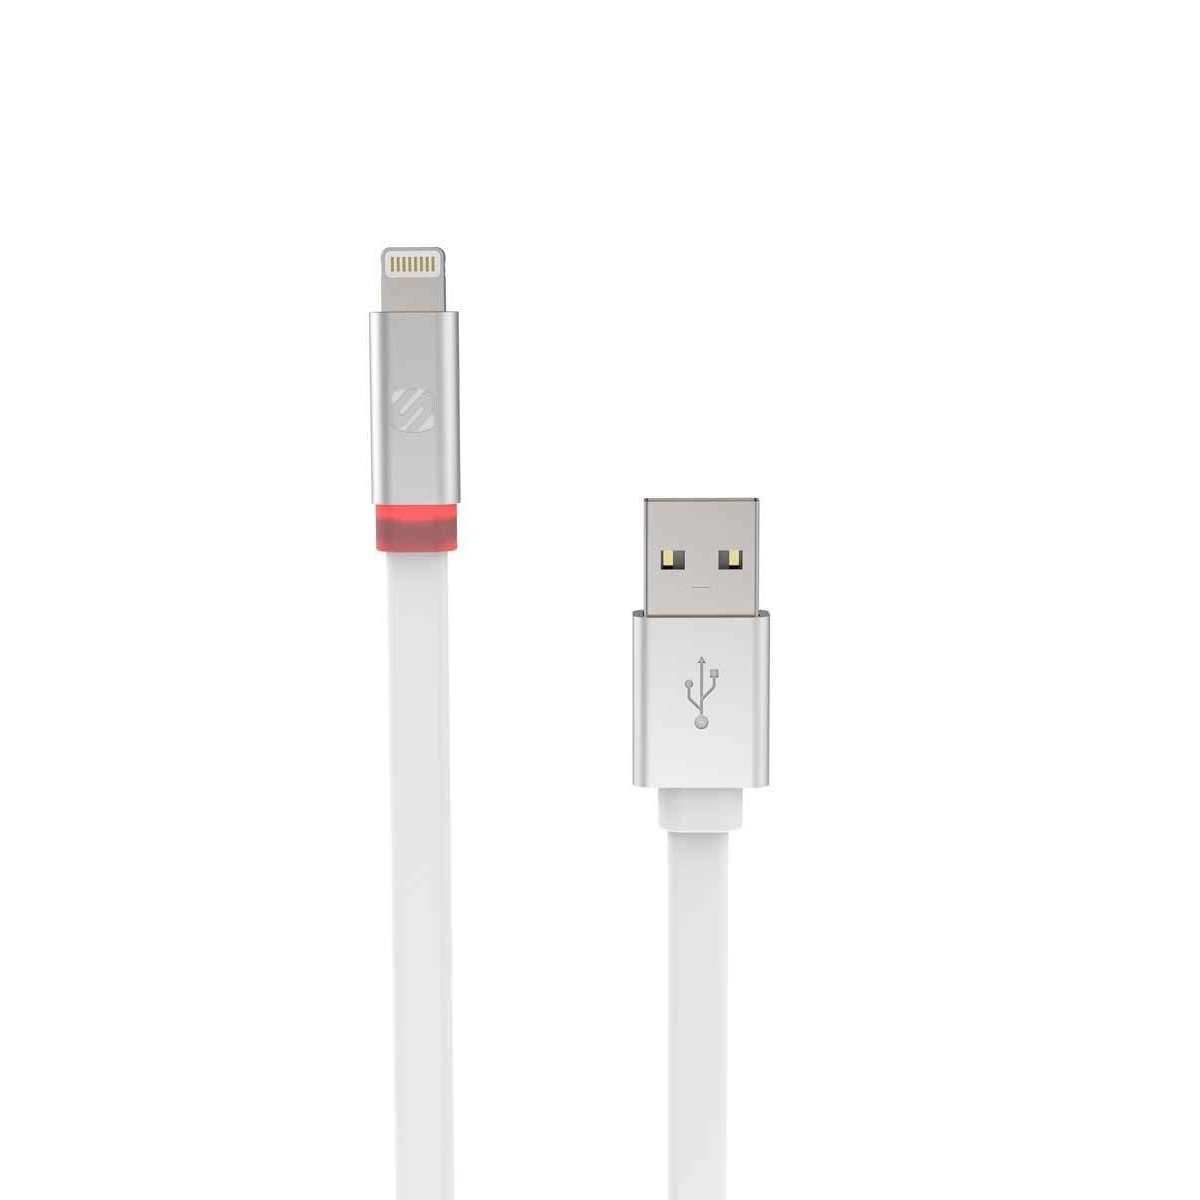 SCOSCHE FlatOut Lightning to USB Charge and Sync Cable with LED Indicator